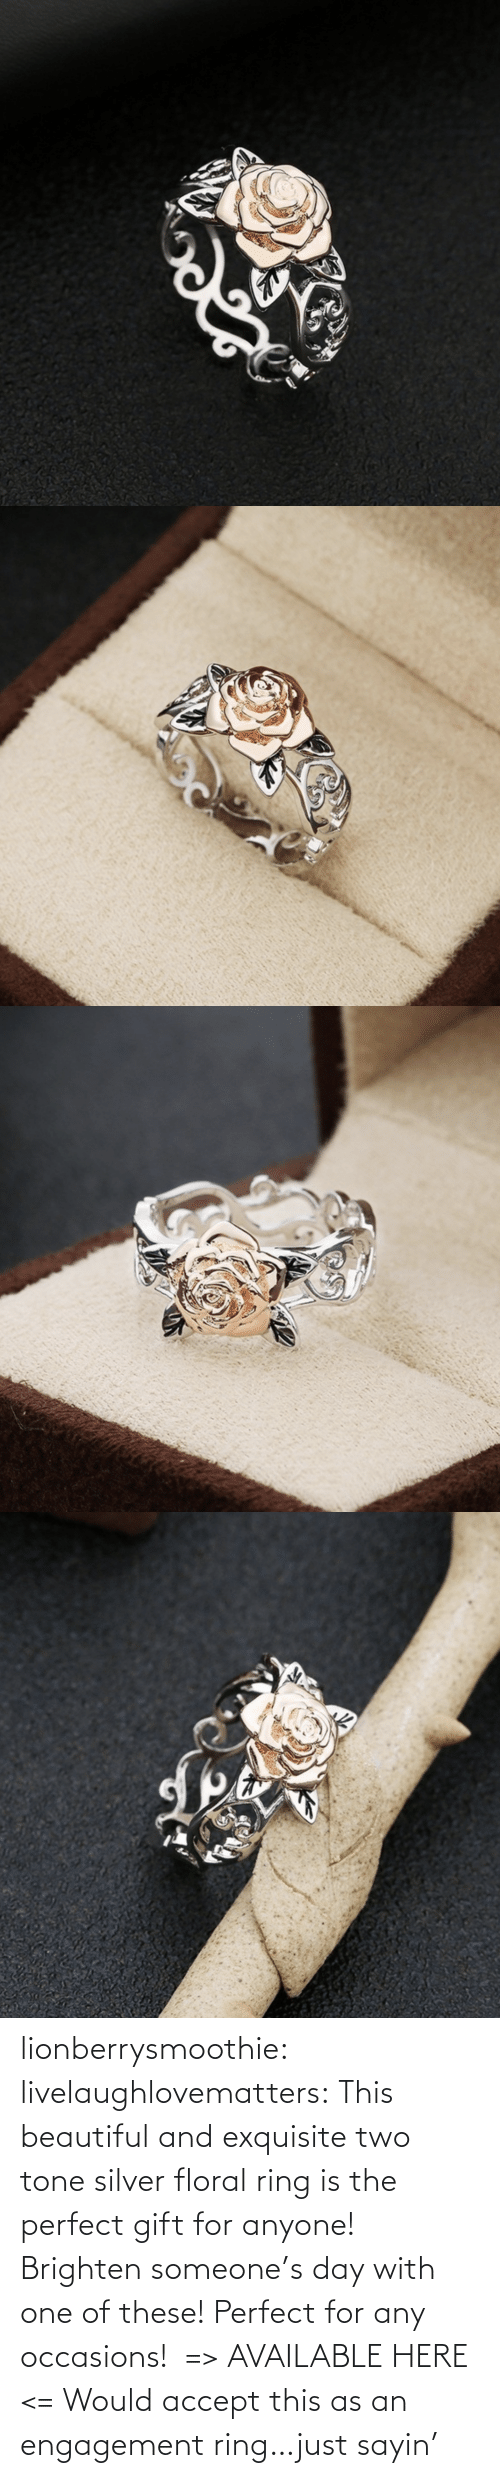 Brighten: lionberrysmoothie:  livelaughlovematters: This beautiful and exquisite two tone silver floral ring is the perfect gift for anyone! Brighten someone's day with one of these! Perfect for any occasions! => AVAILABLE HERE <=    Would accept this as an engagement ring…just sayin'